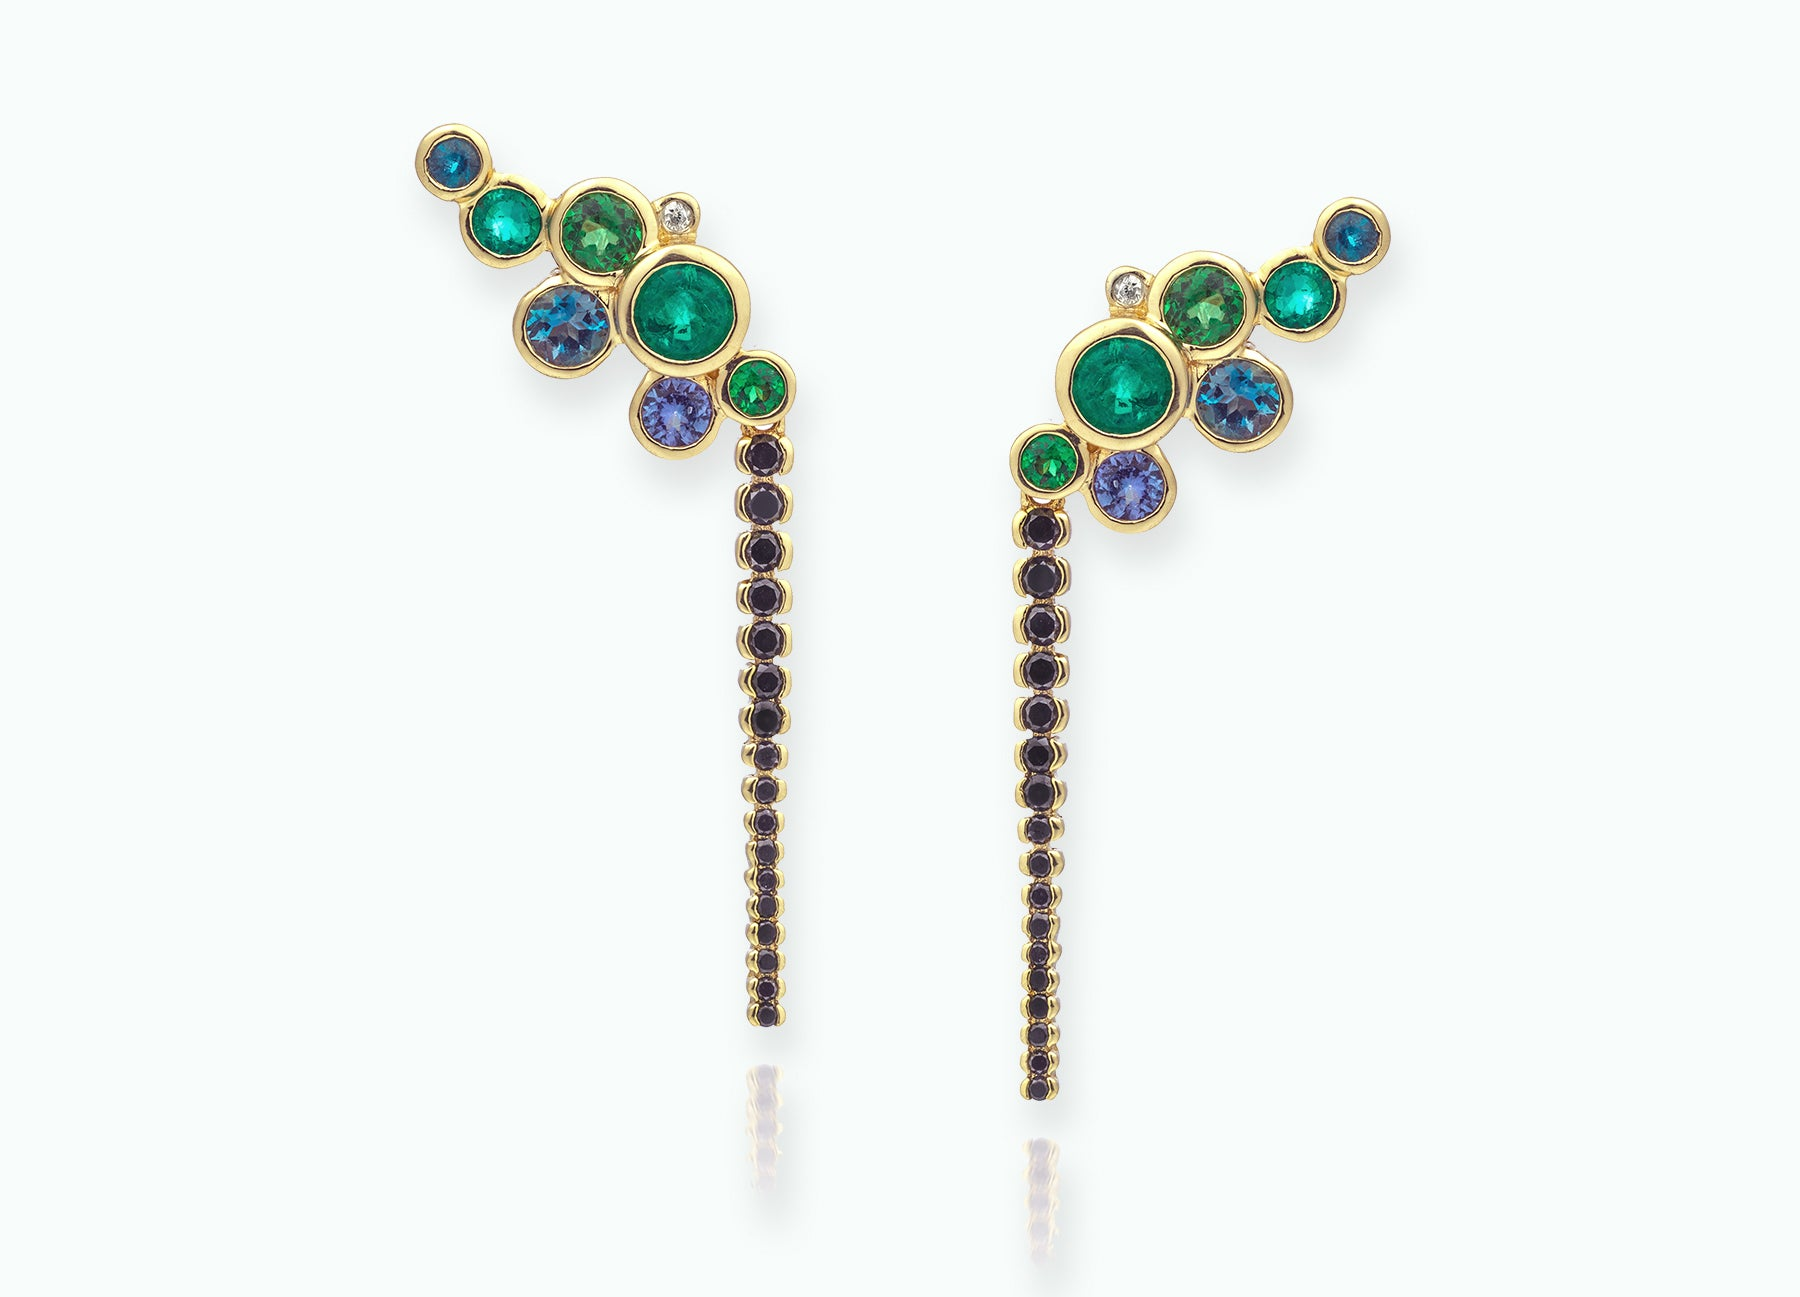 EMERALD BUBBLE EARRINGS WITH BLACK DIAMOND EXTENSION DROPS